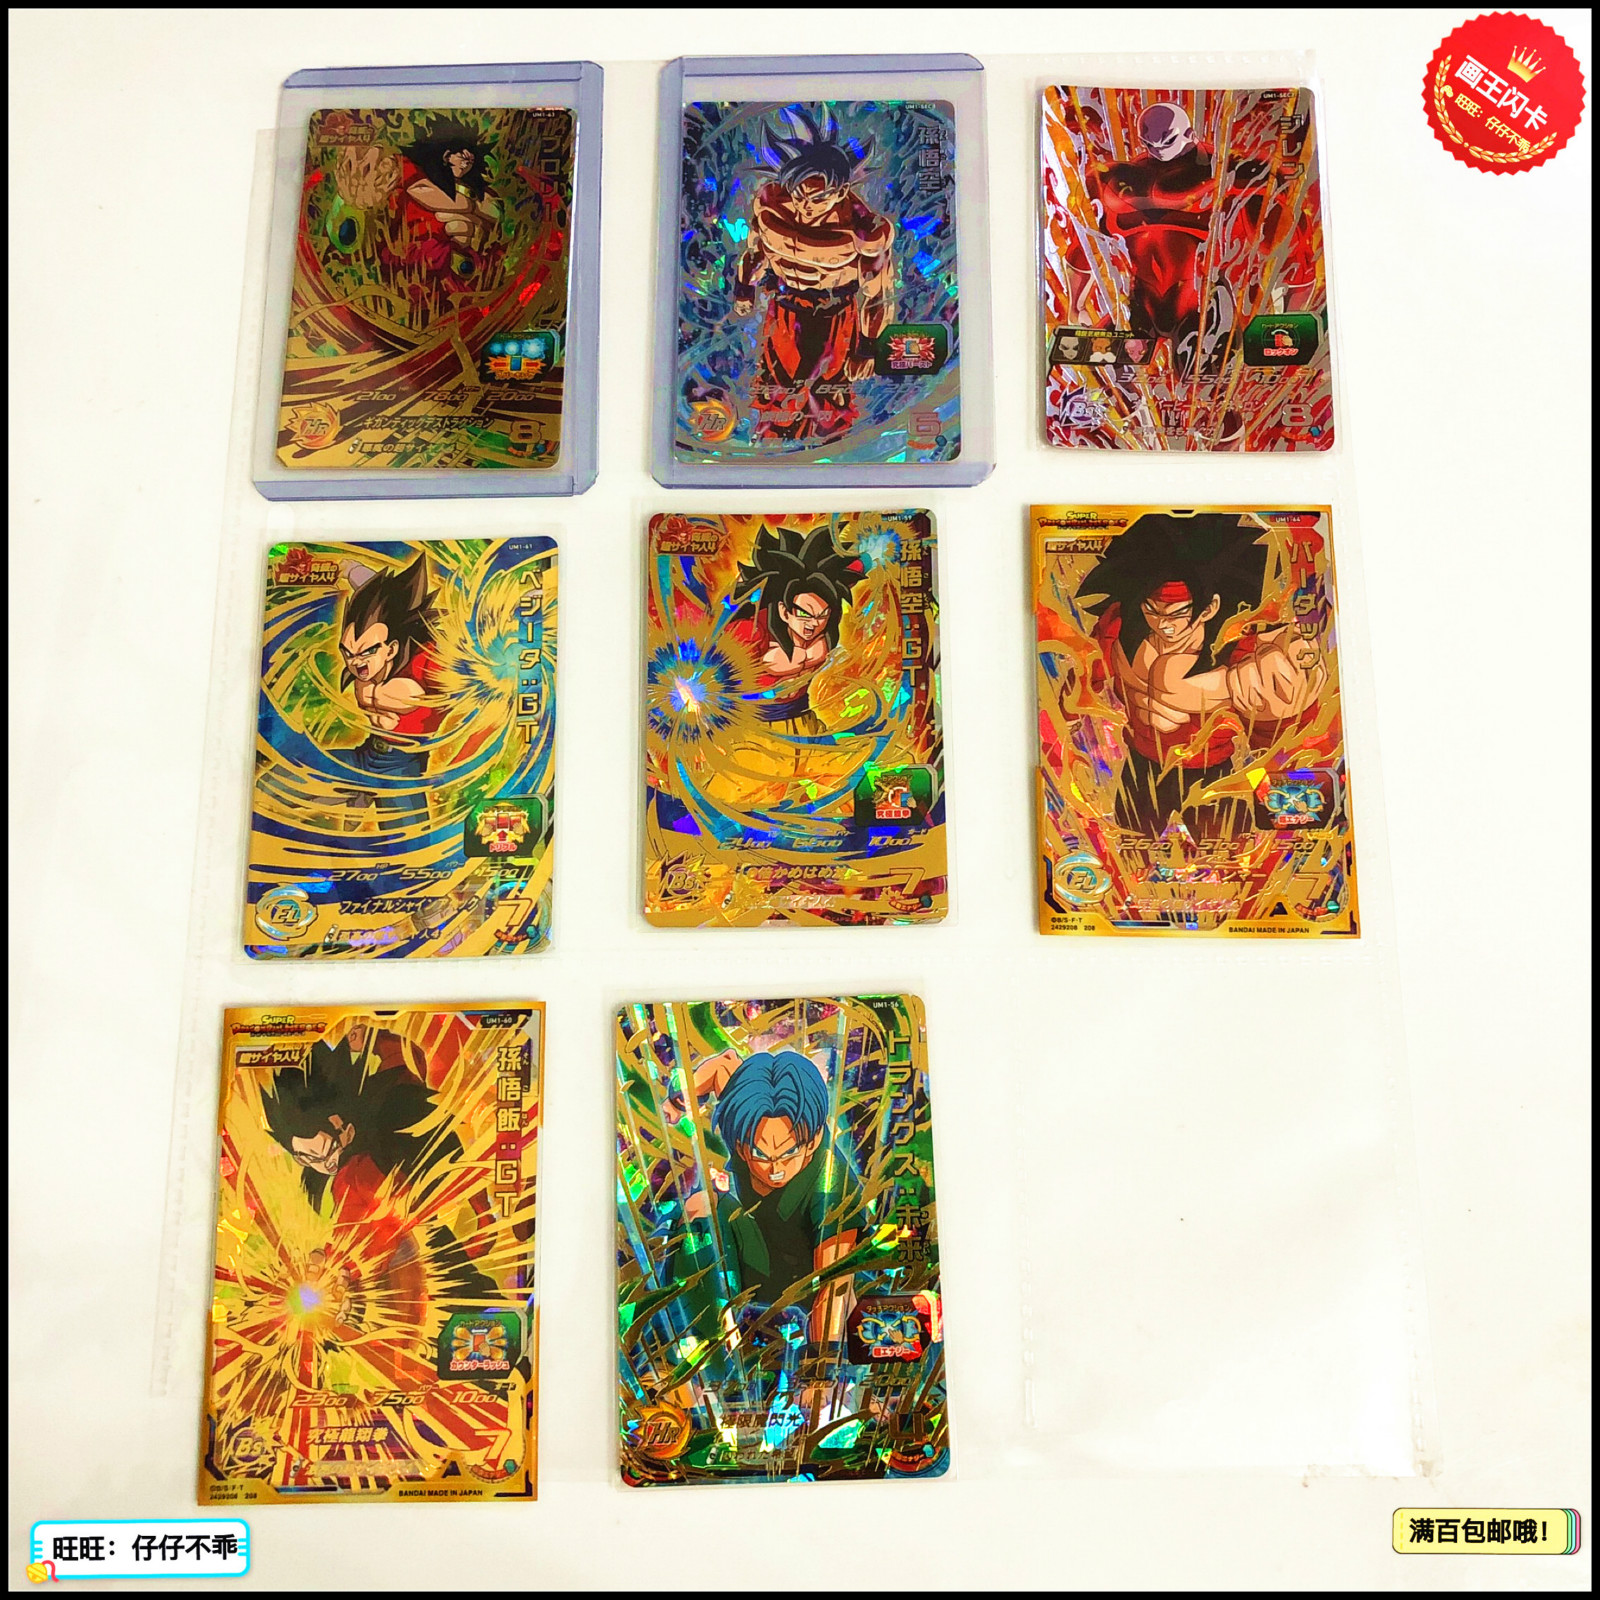 Japan Original Dragon Ball Hero Card SEC/UR Goku Toys Hobbies Collectibles Game Collection Anime Cards